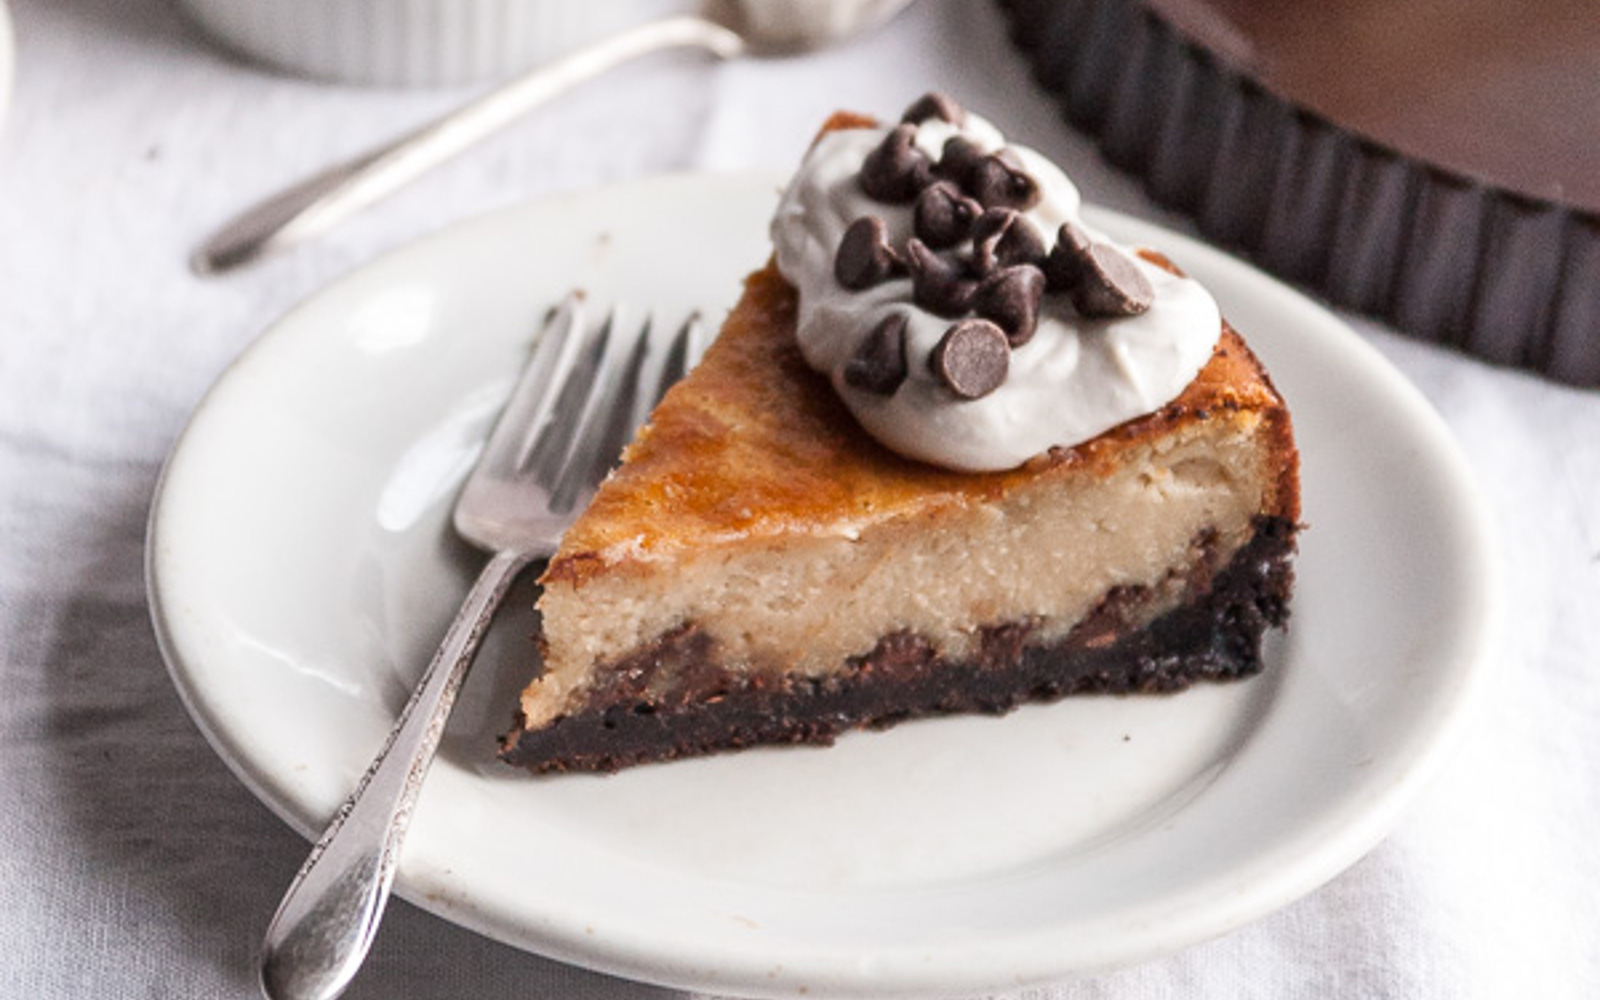 Chocolate Chip Cheesecake With Chocolate Cookie Crust